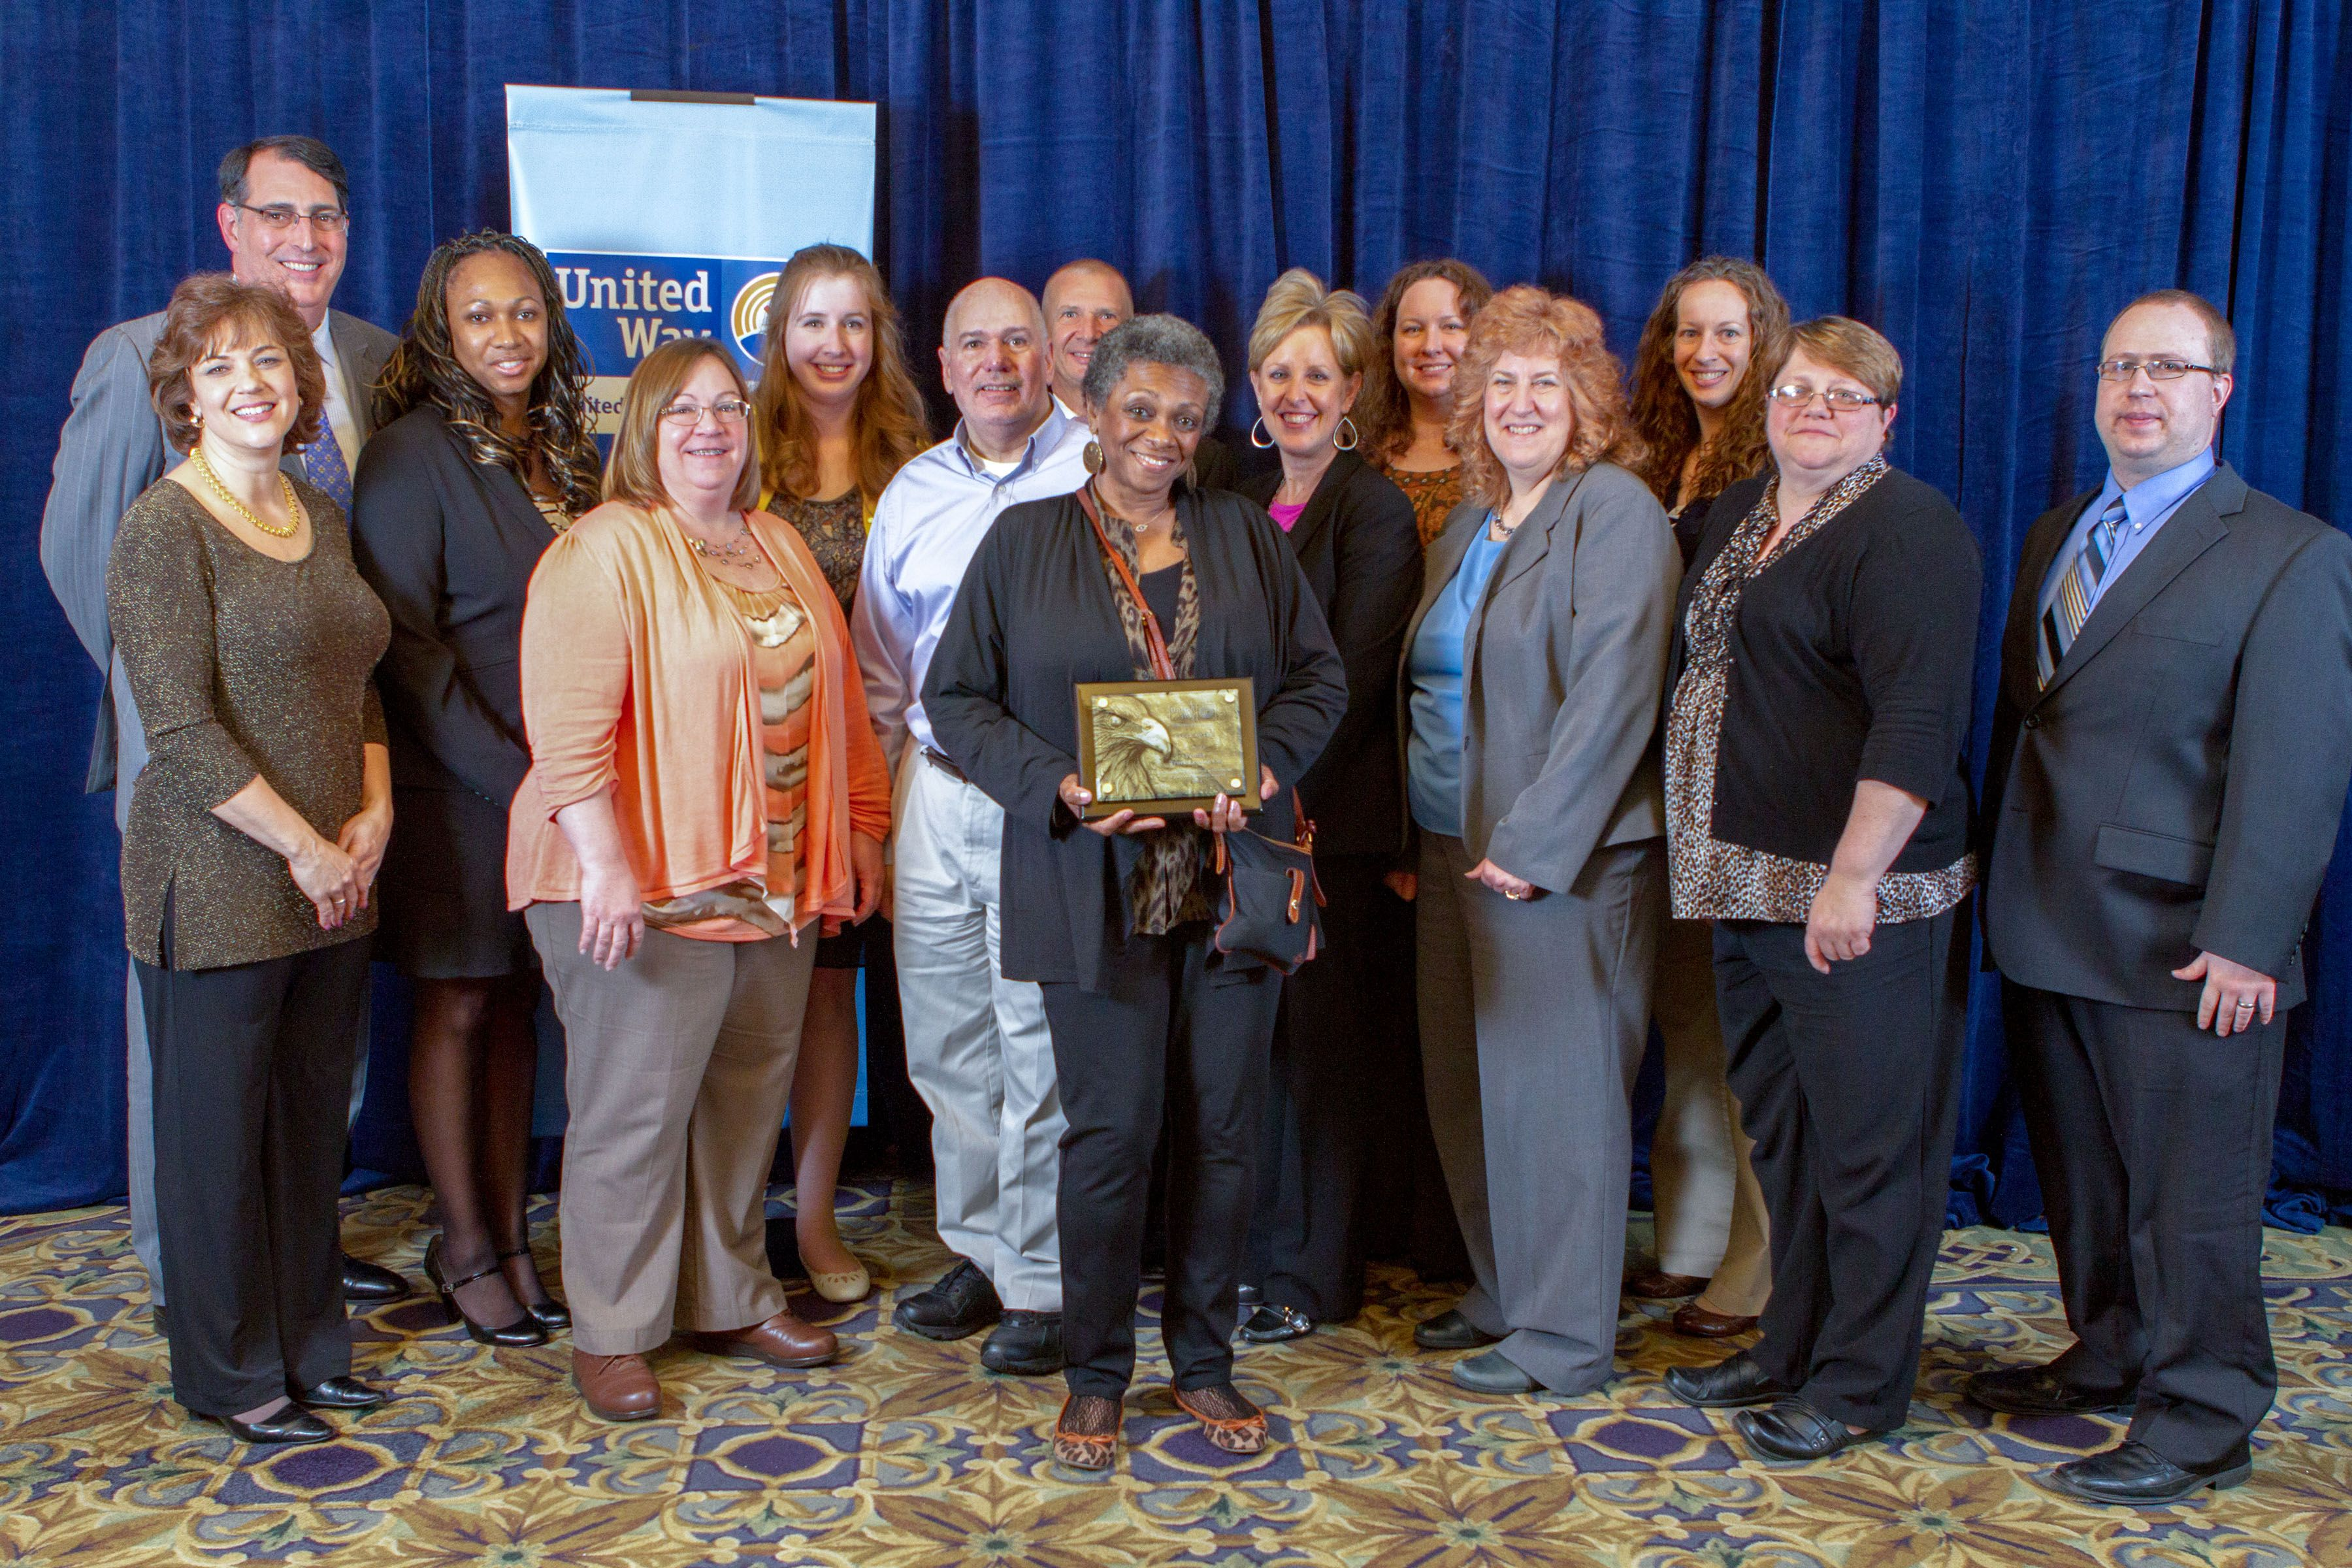 Local United Way Honors Penske Headquarters with Fundraising Award